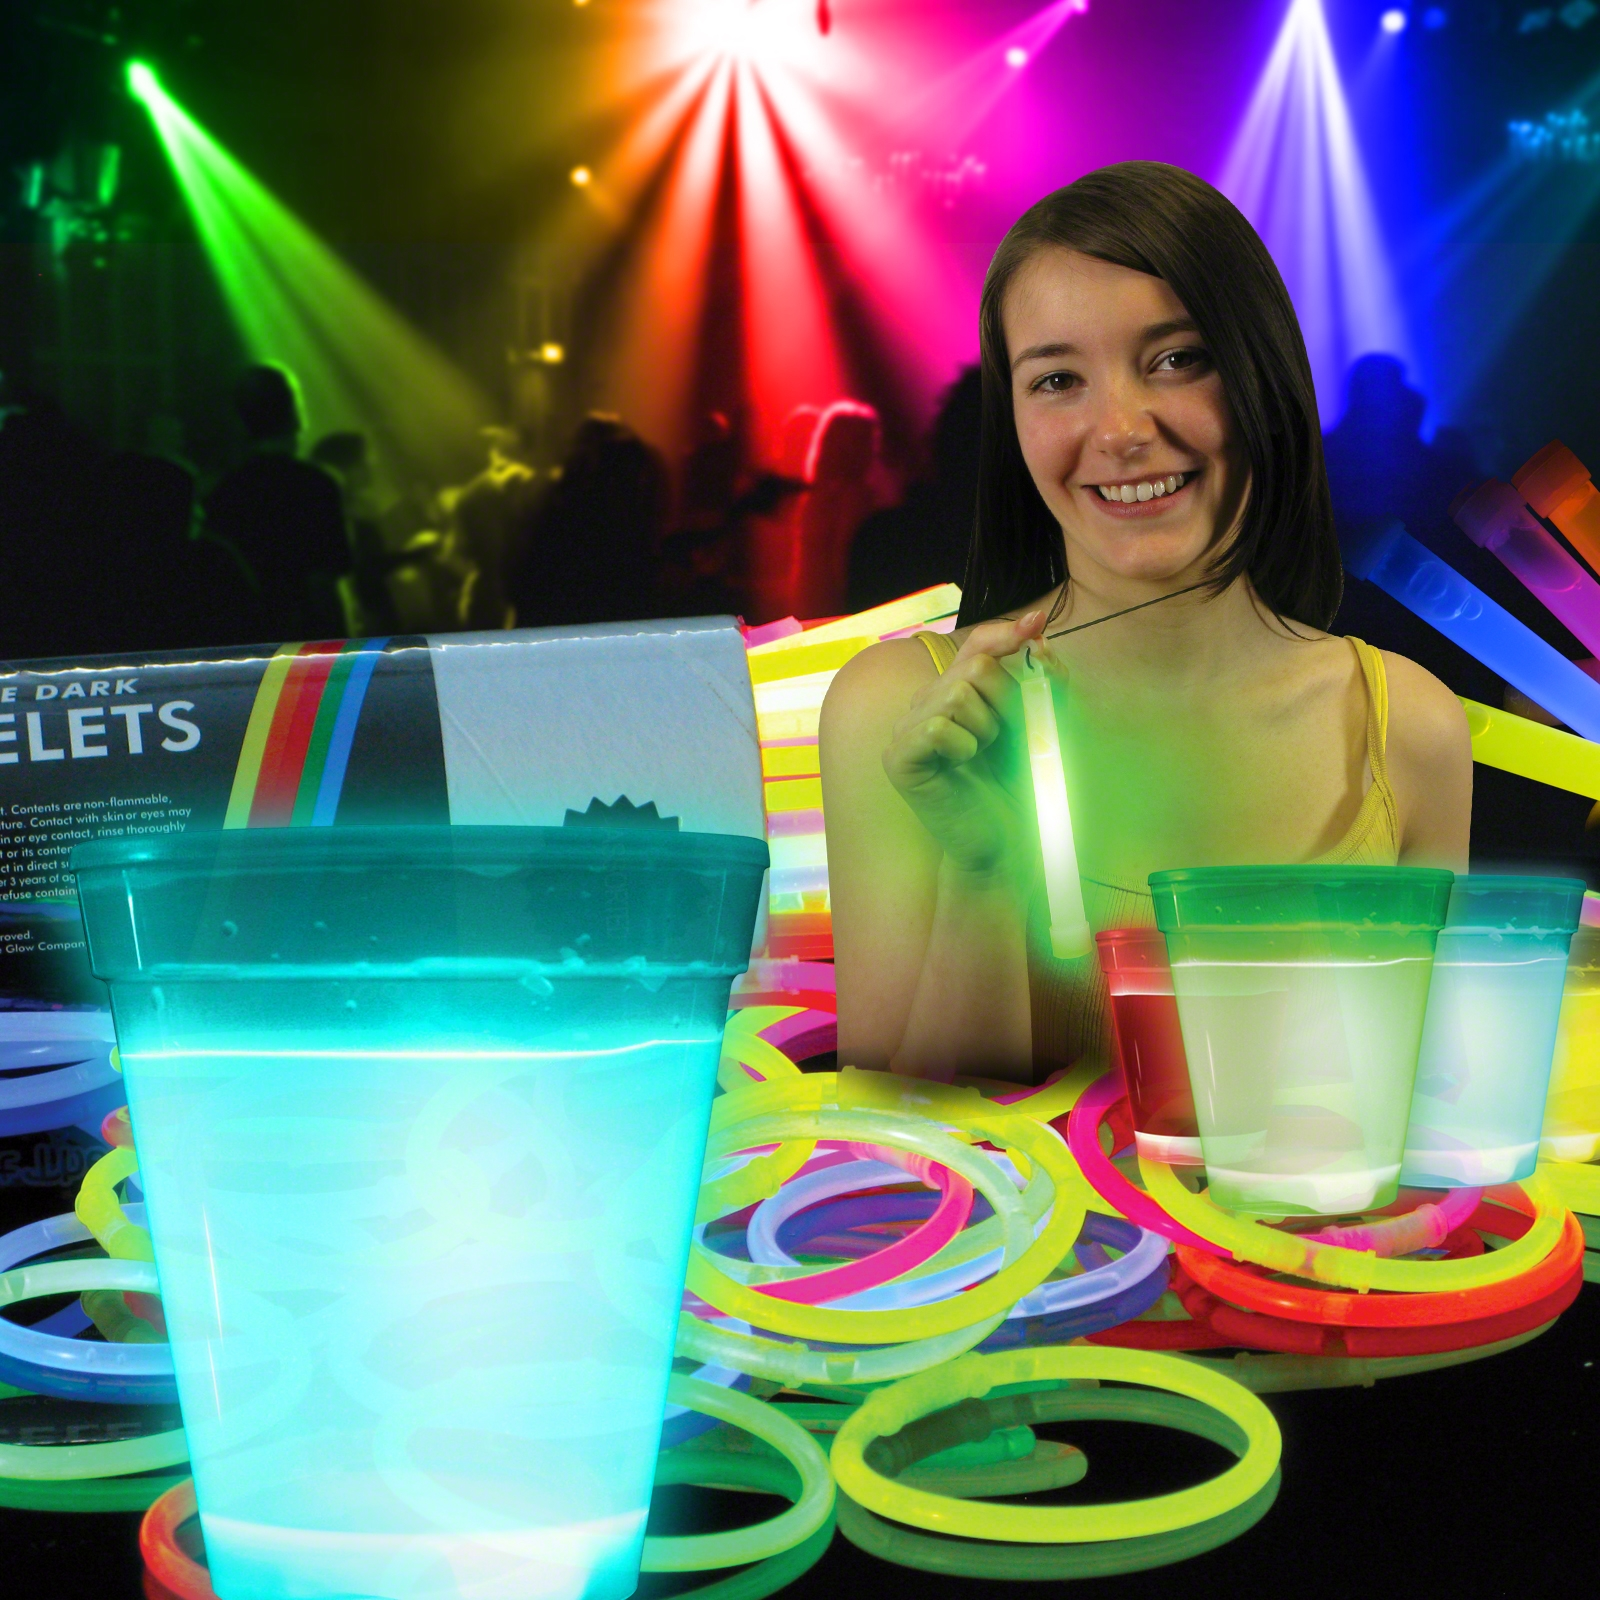 Glow Party Packs